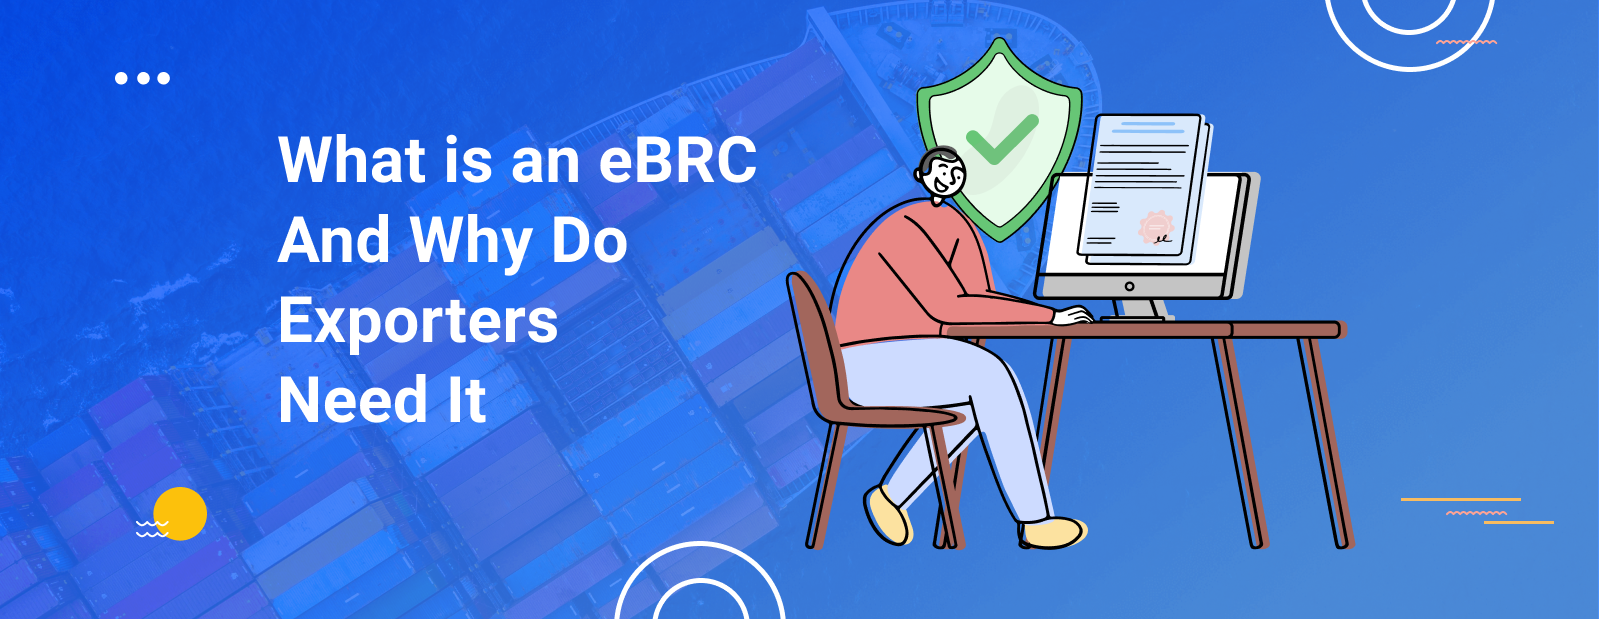 What is an eBRC & Why Do Exporters Need It